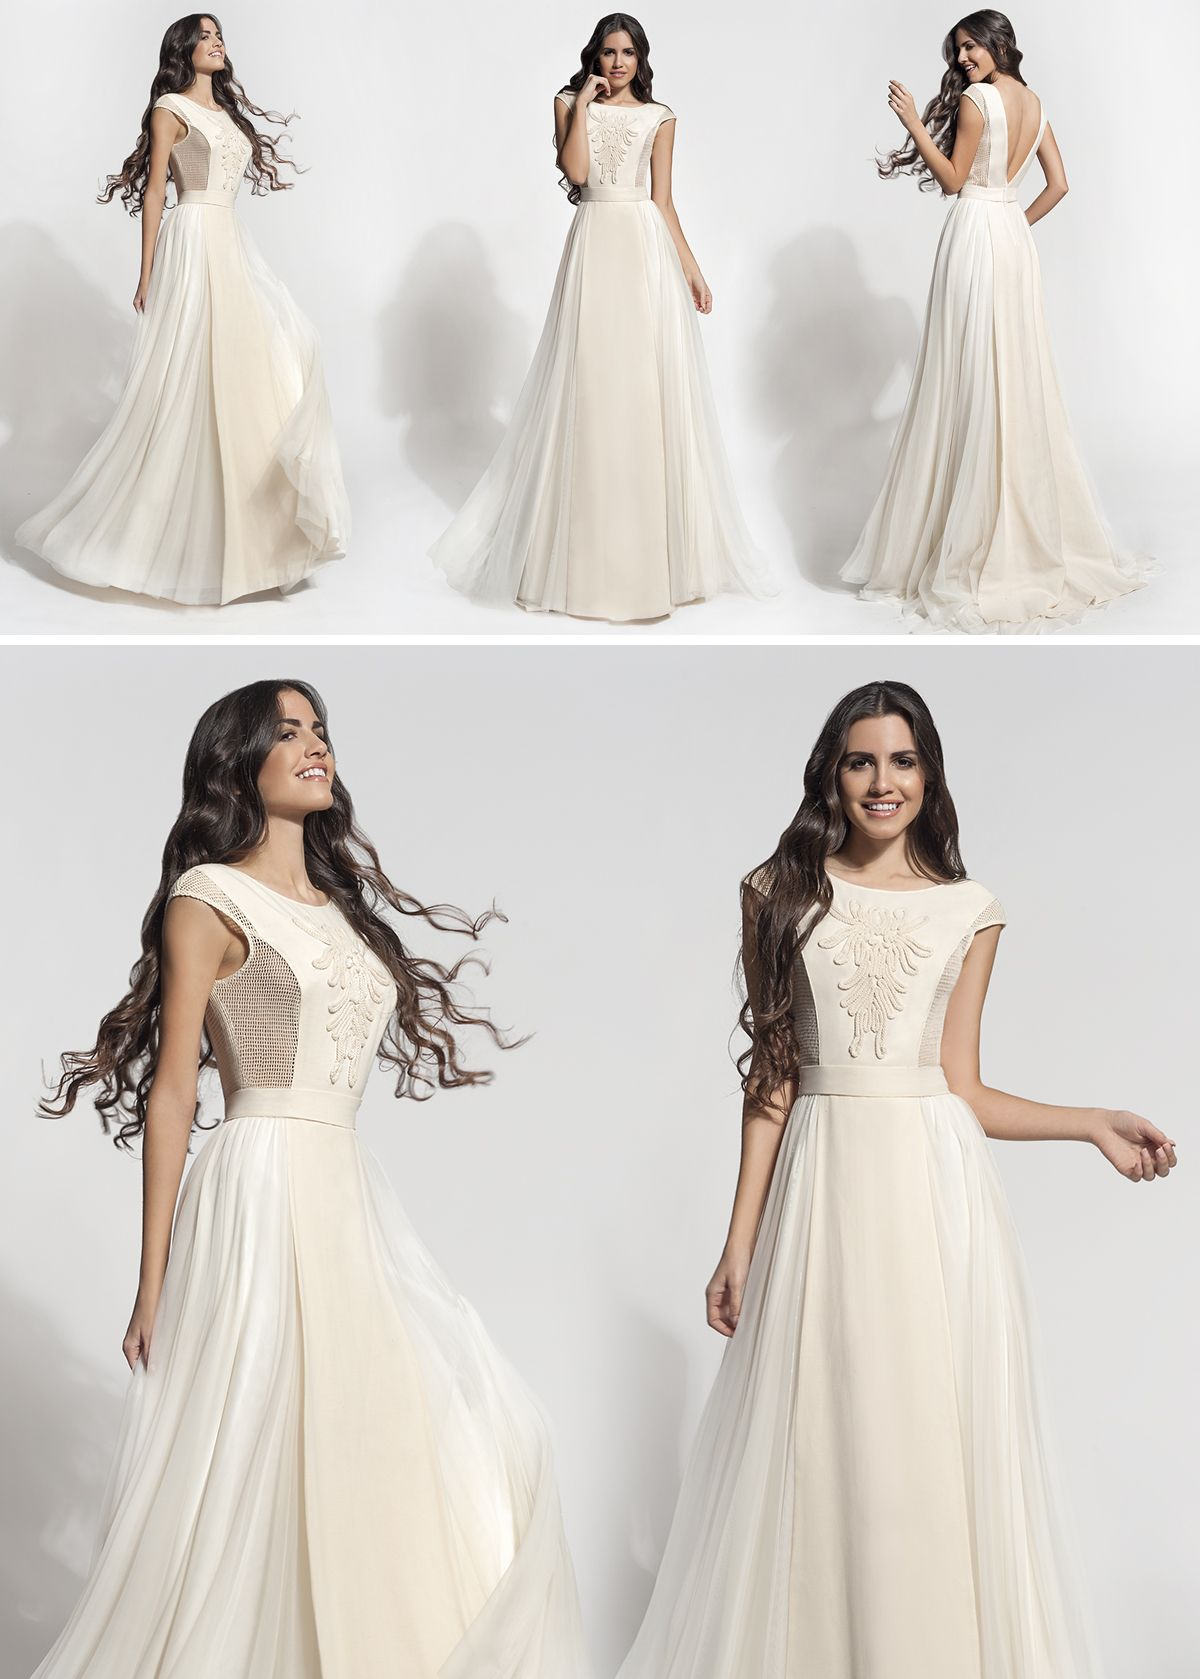 There Is Something Unique When You Buy A Wedding Dress Dresses Boho Bridal Gowns Wedding Dresses